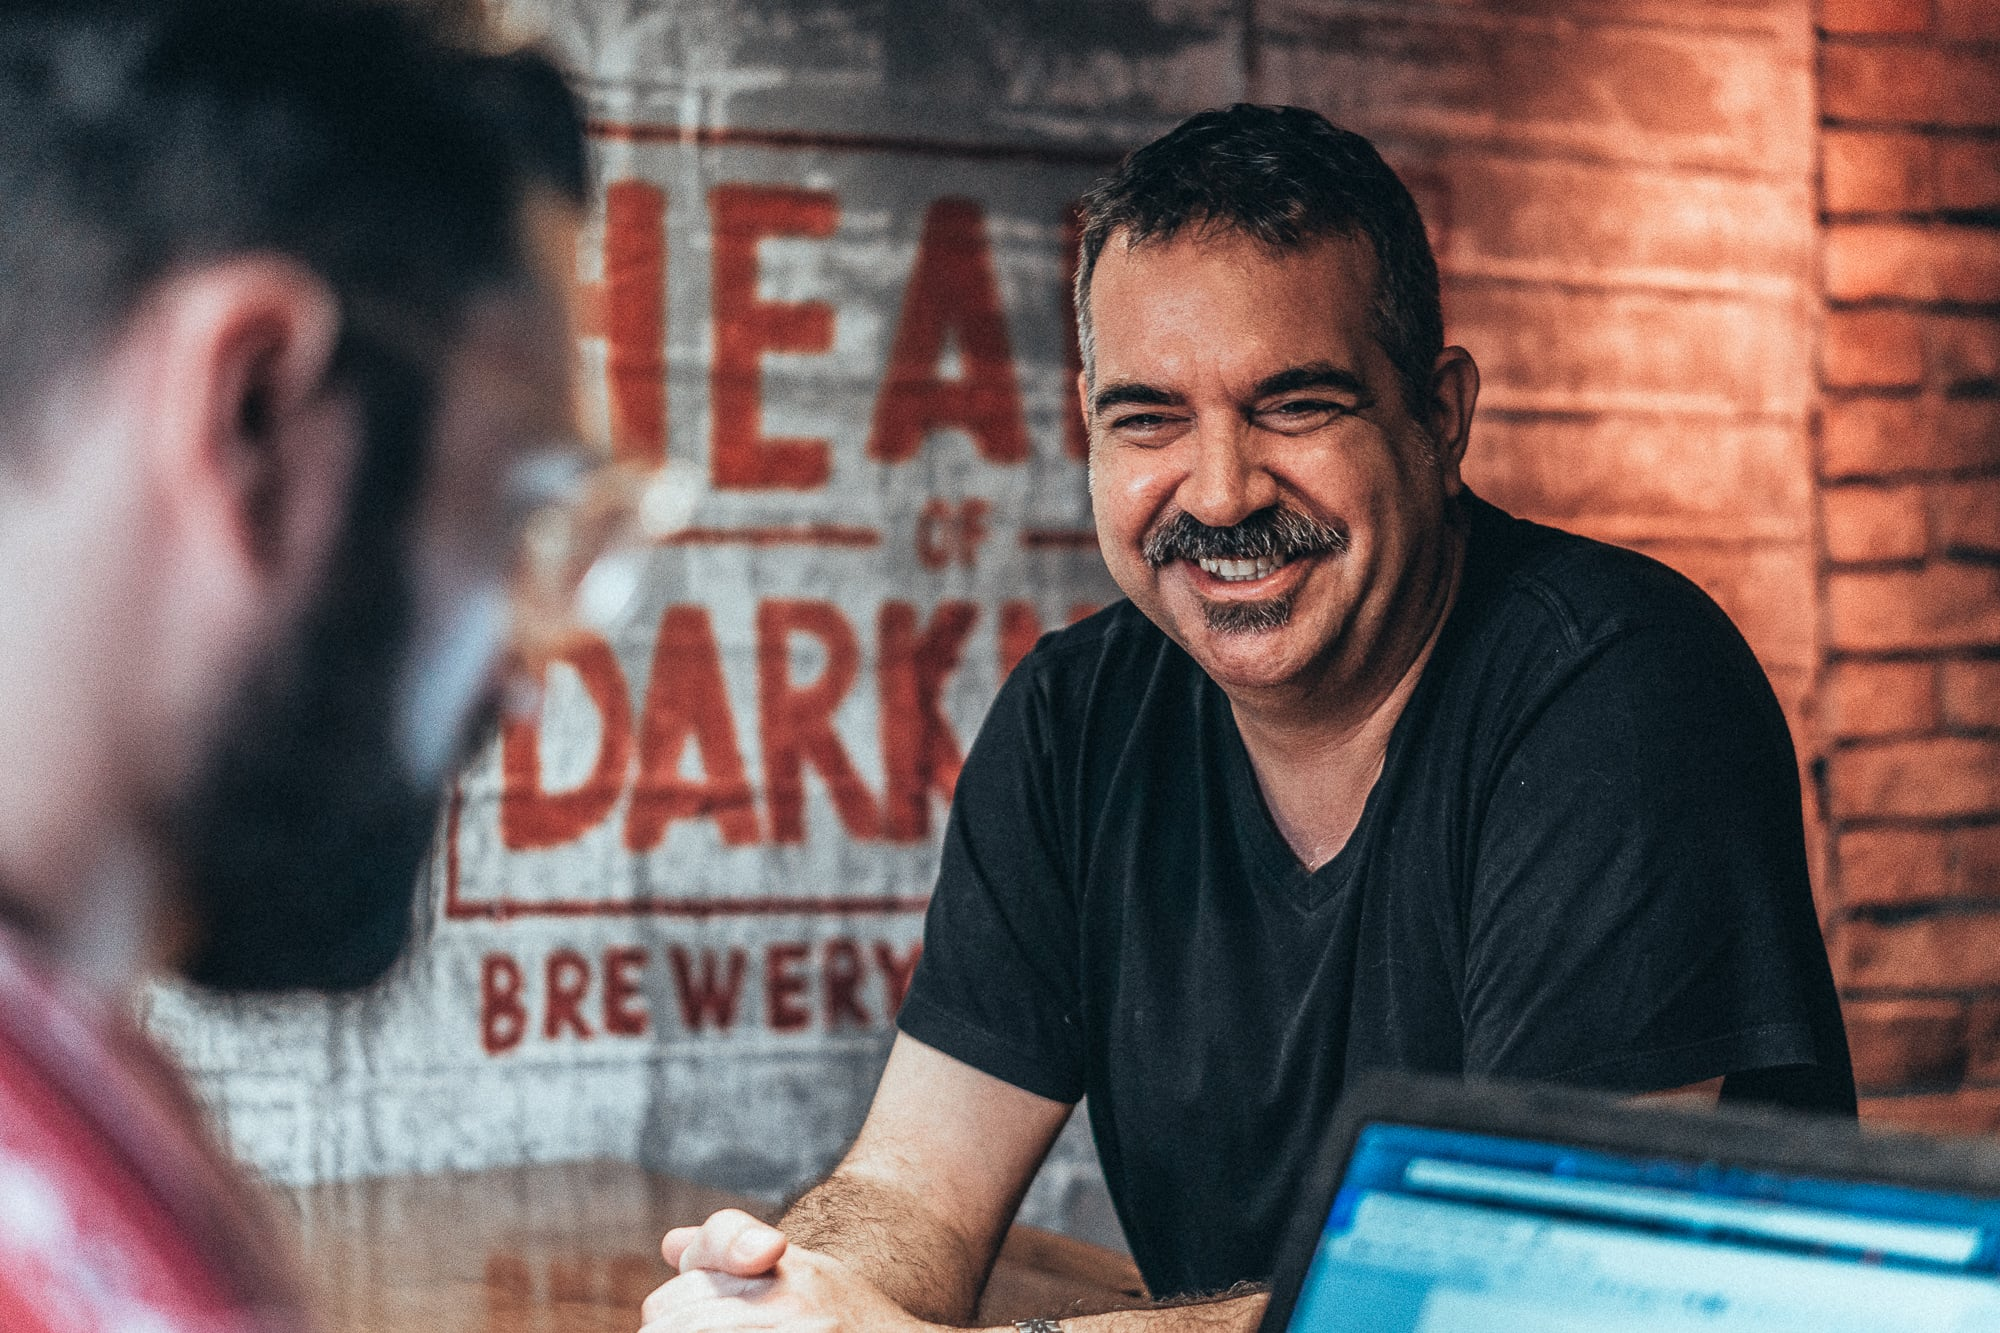 Heart of Darkness Craft Brewery: Building An Asian Craft Beer Empire